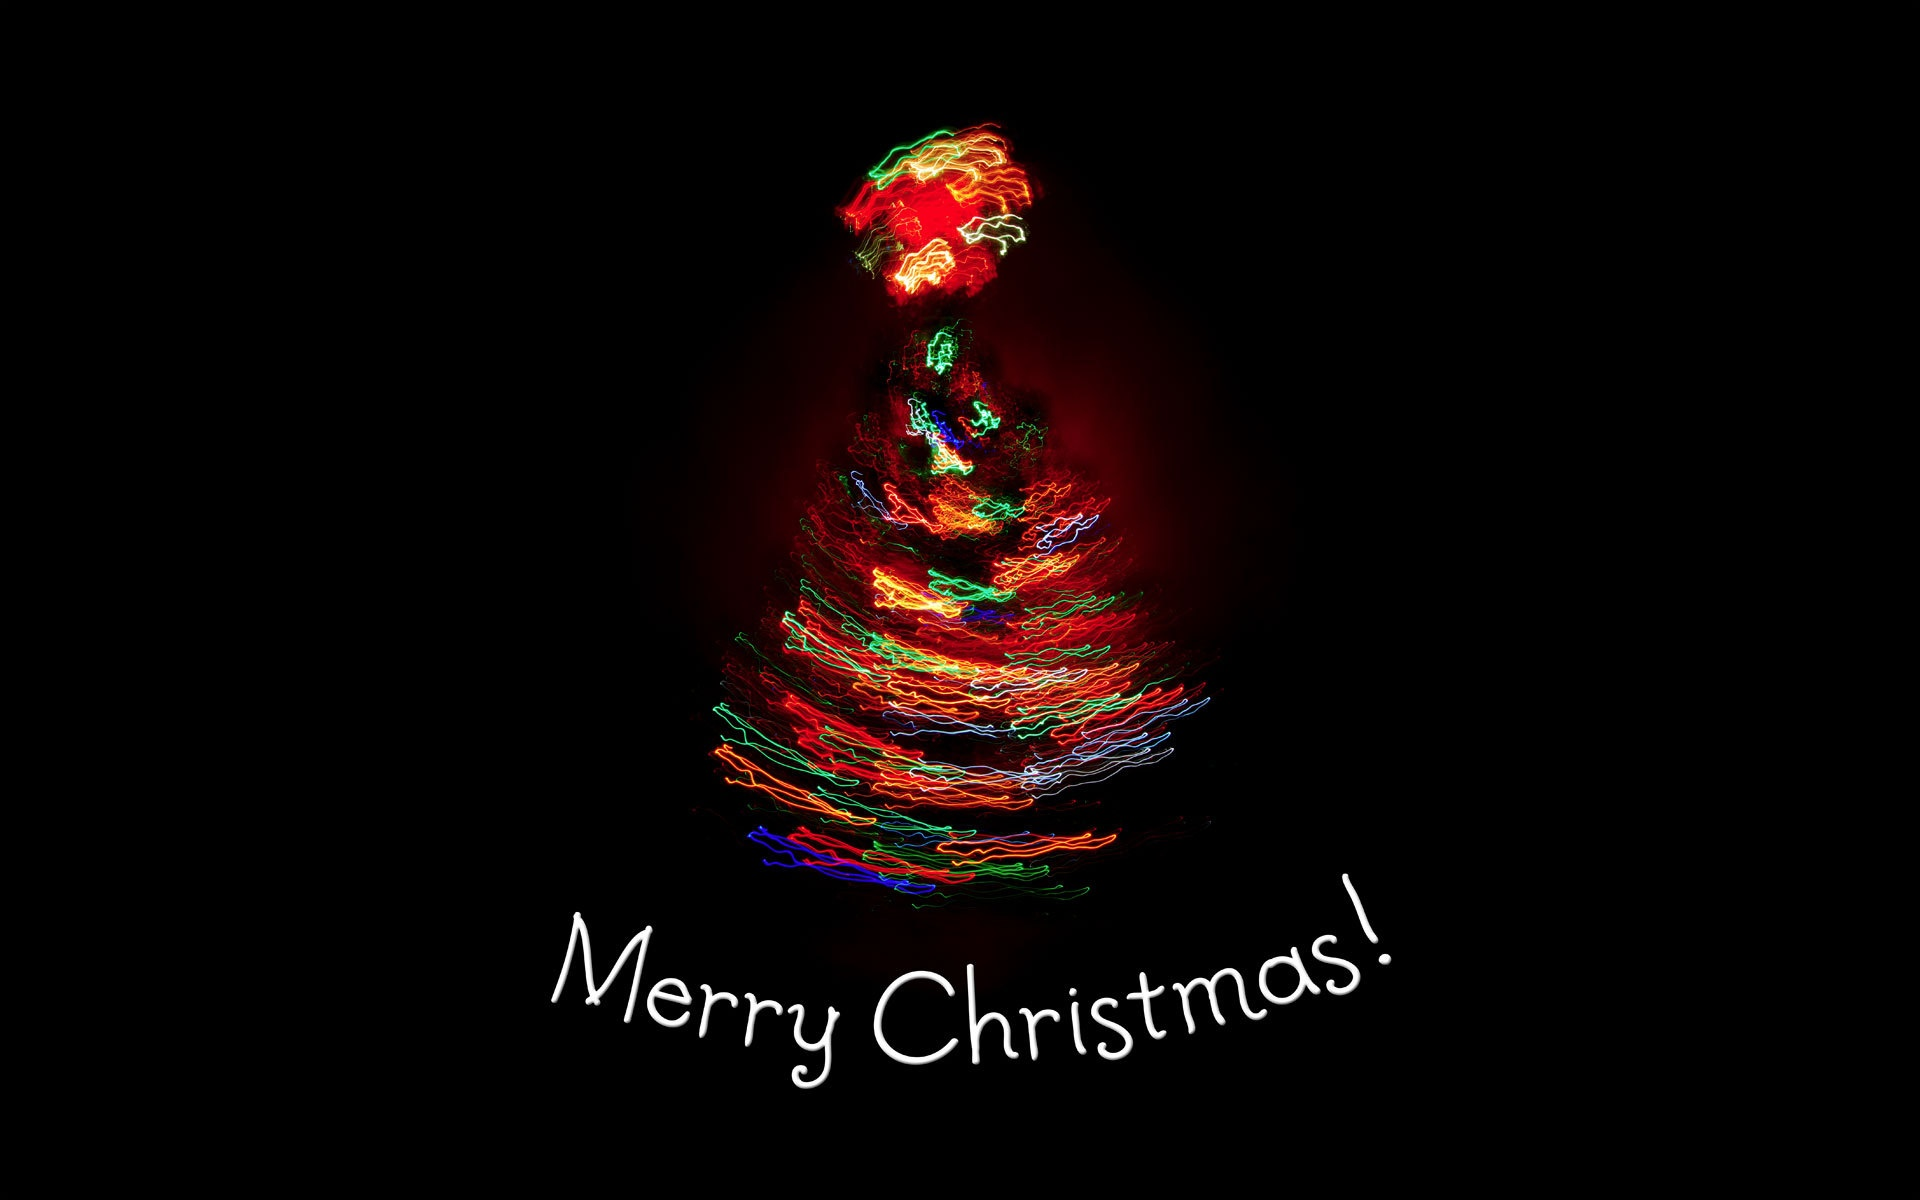 Merry Christmas 2015 Wallpapers HD Wallpapers 1920x1200